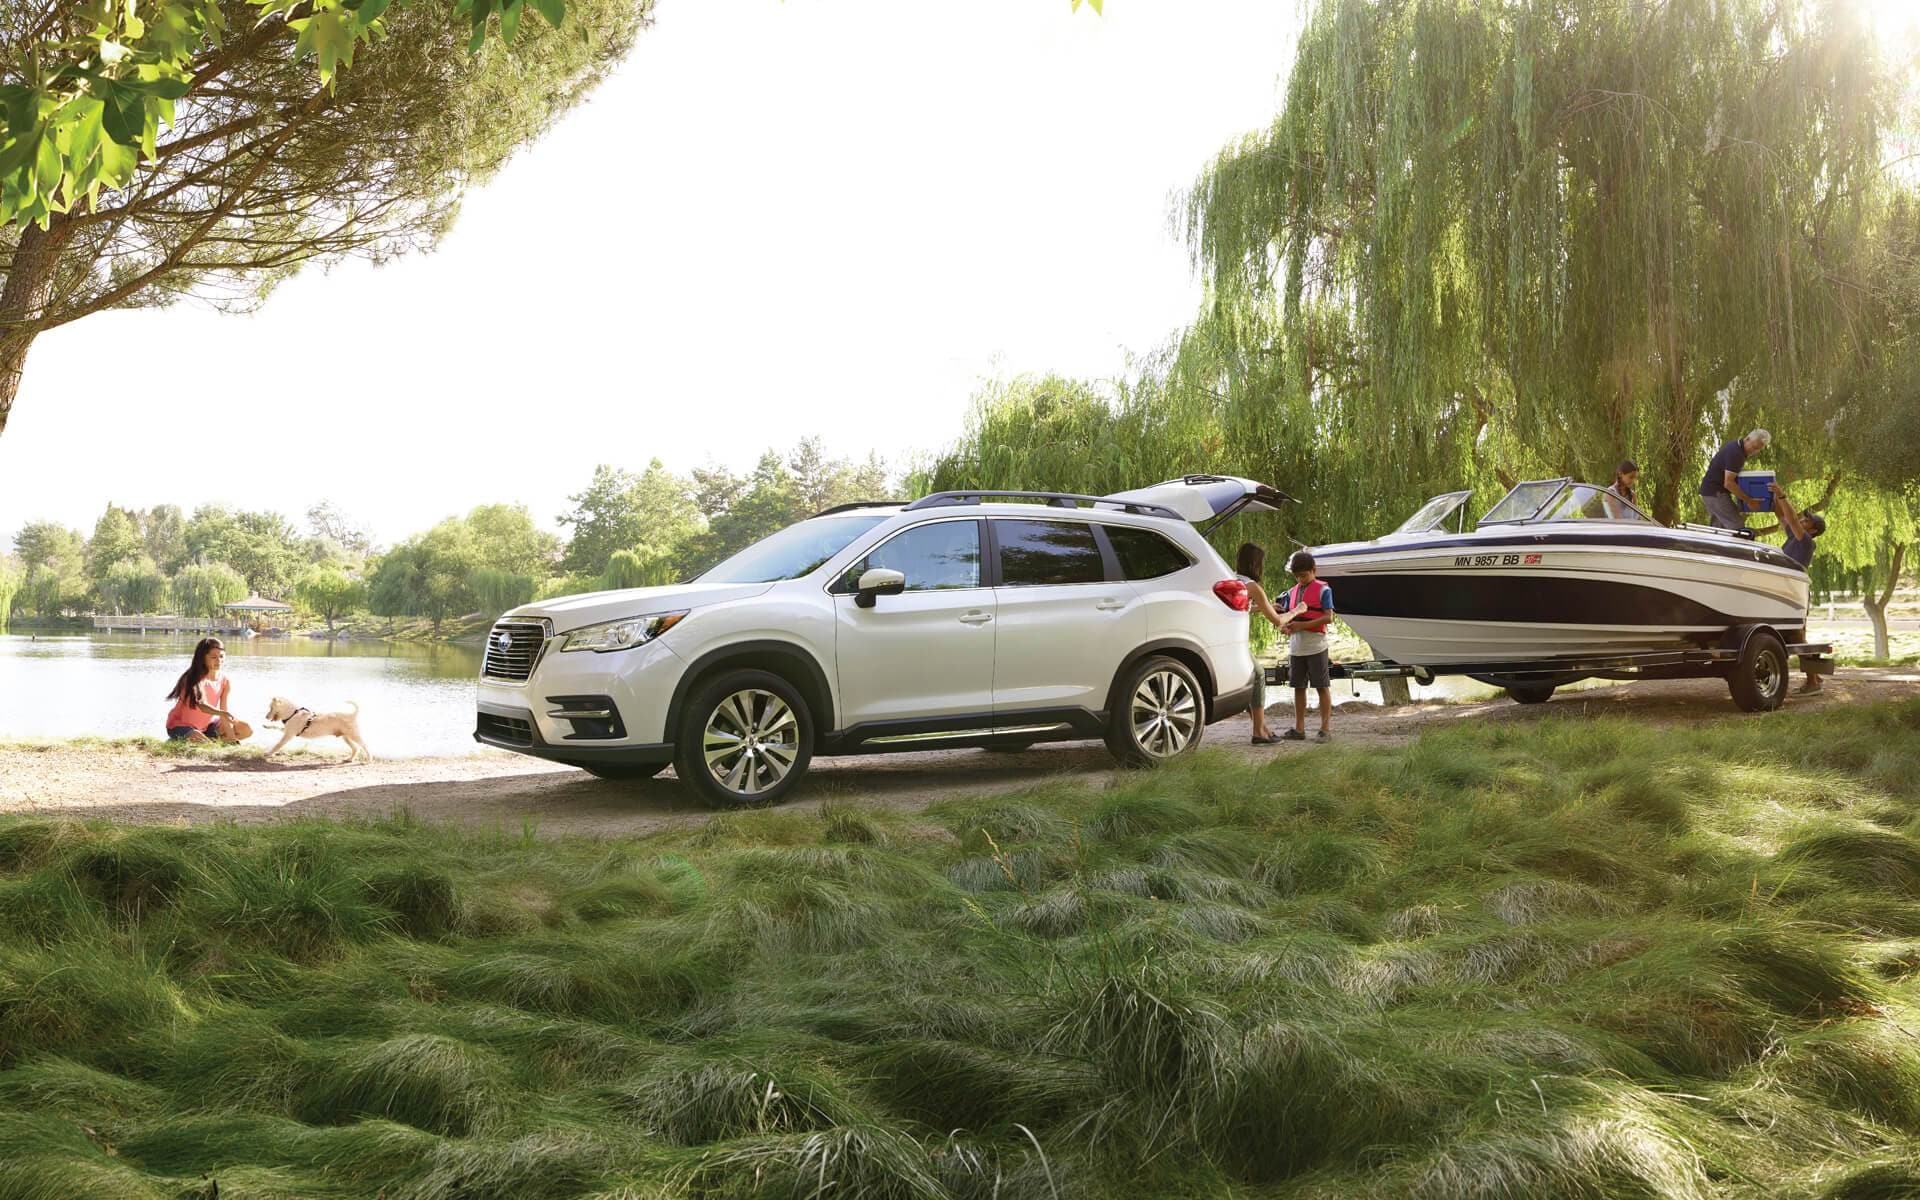 Subaru Ascent Towing Boat